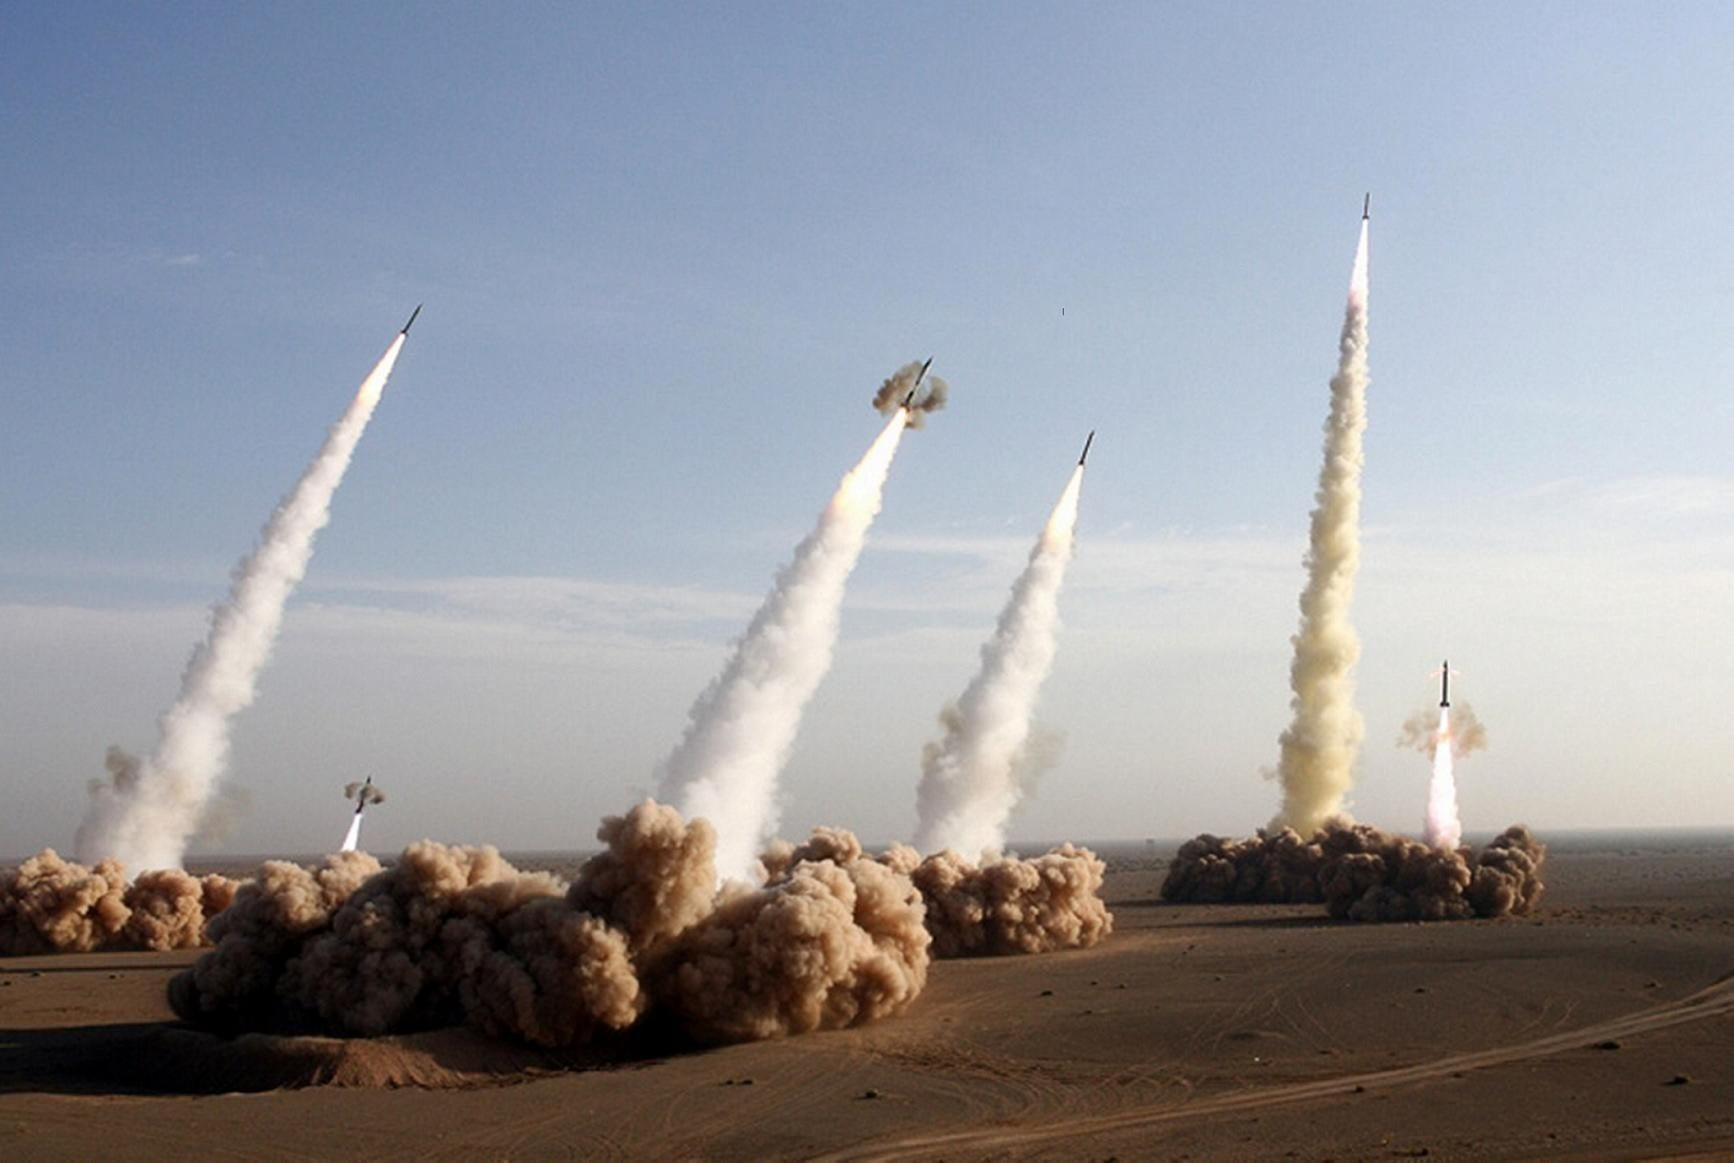 Iran has the largest and most diverse ballistic missile arsenal in the Middle East. (FILE Photo)